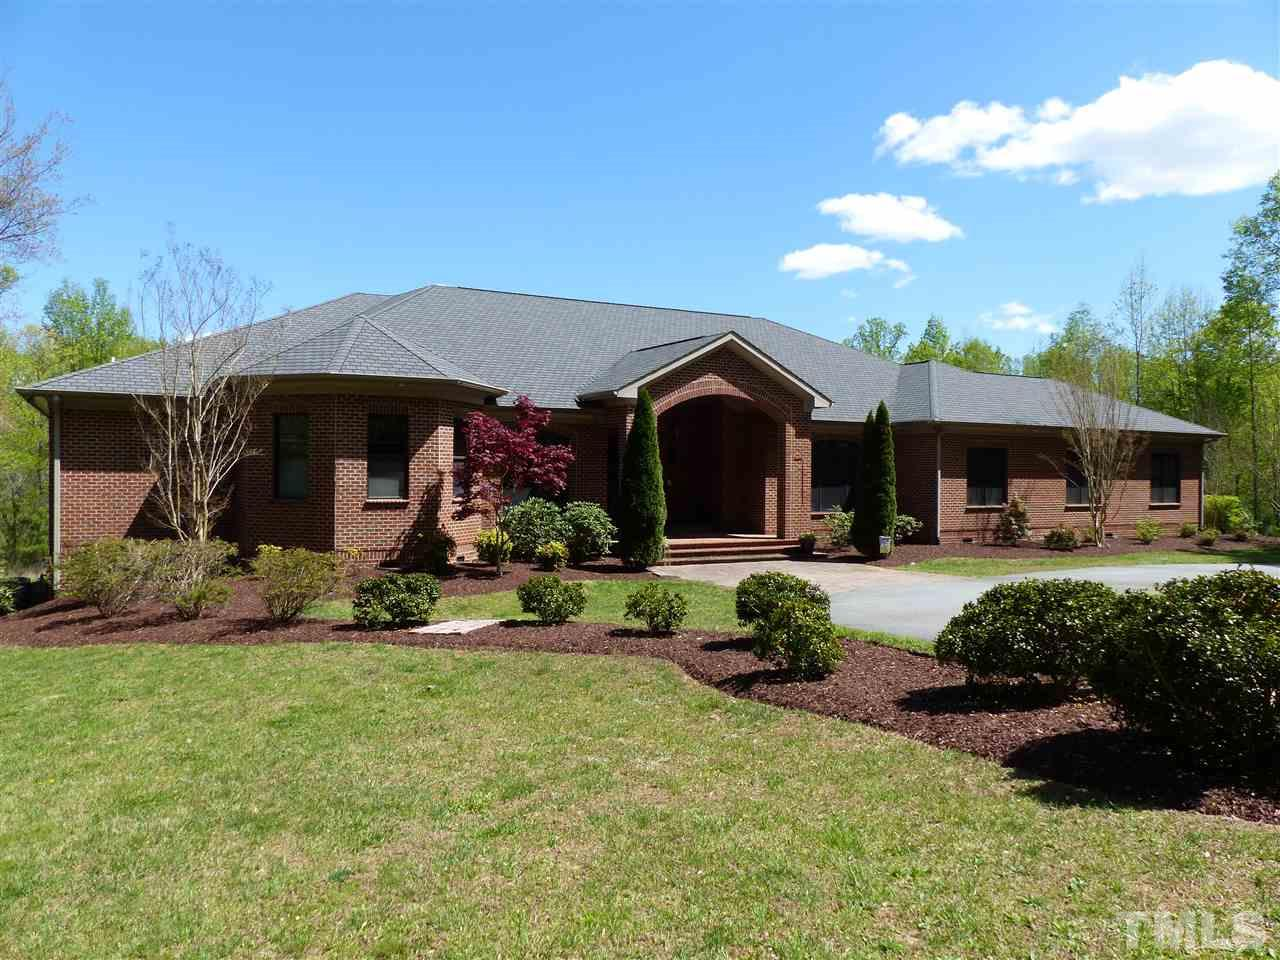 526 White Oak Drive Roxboro - 2